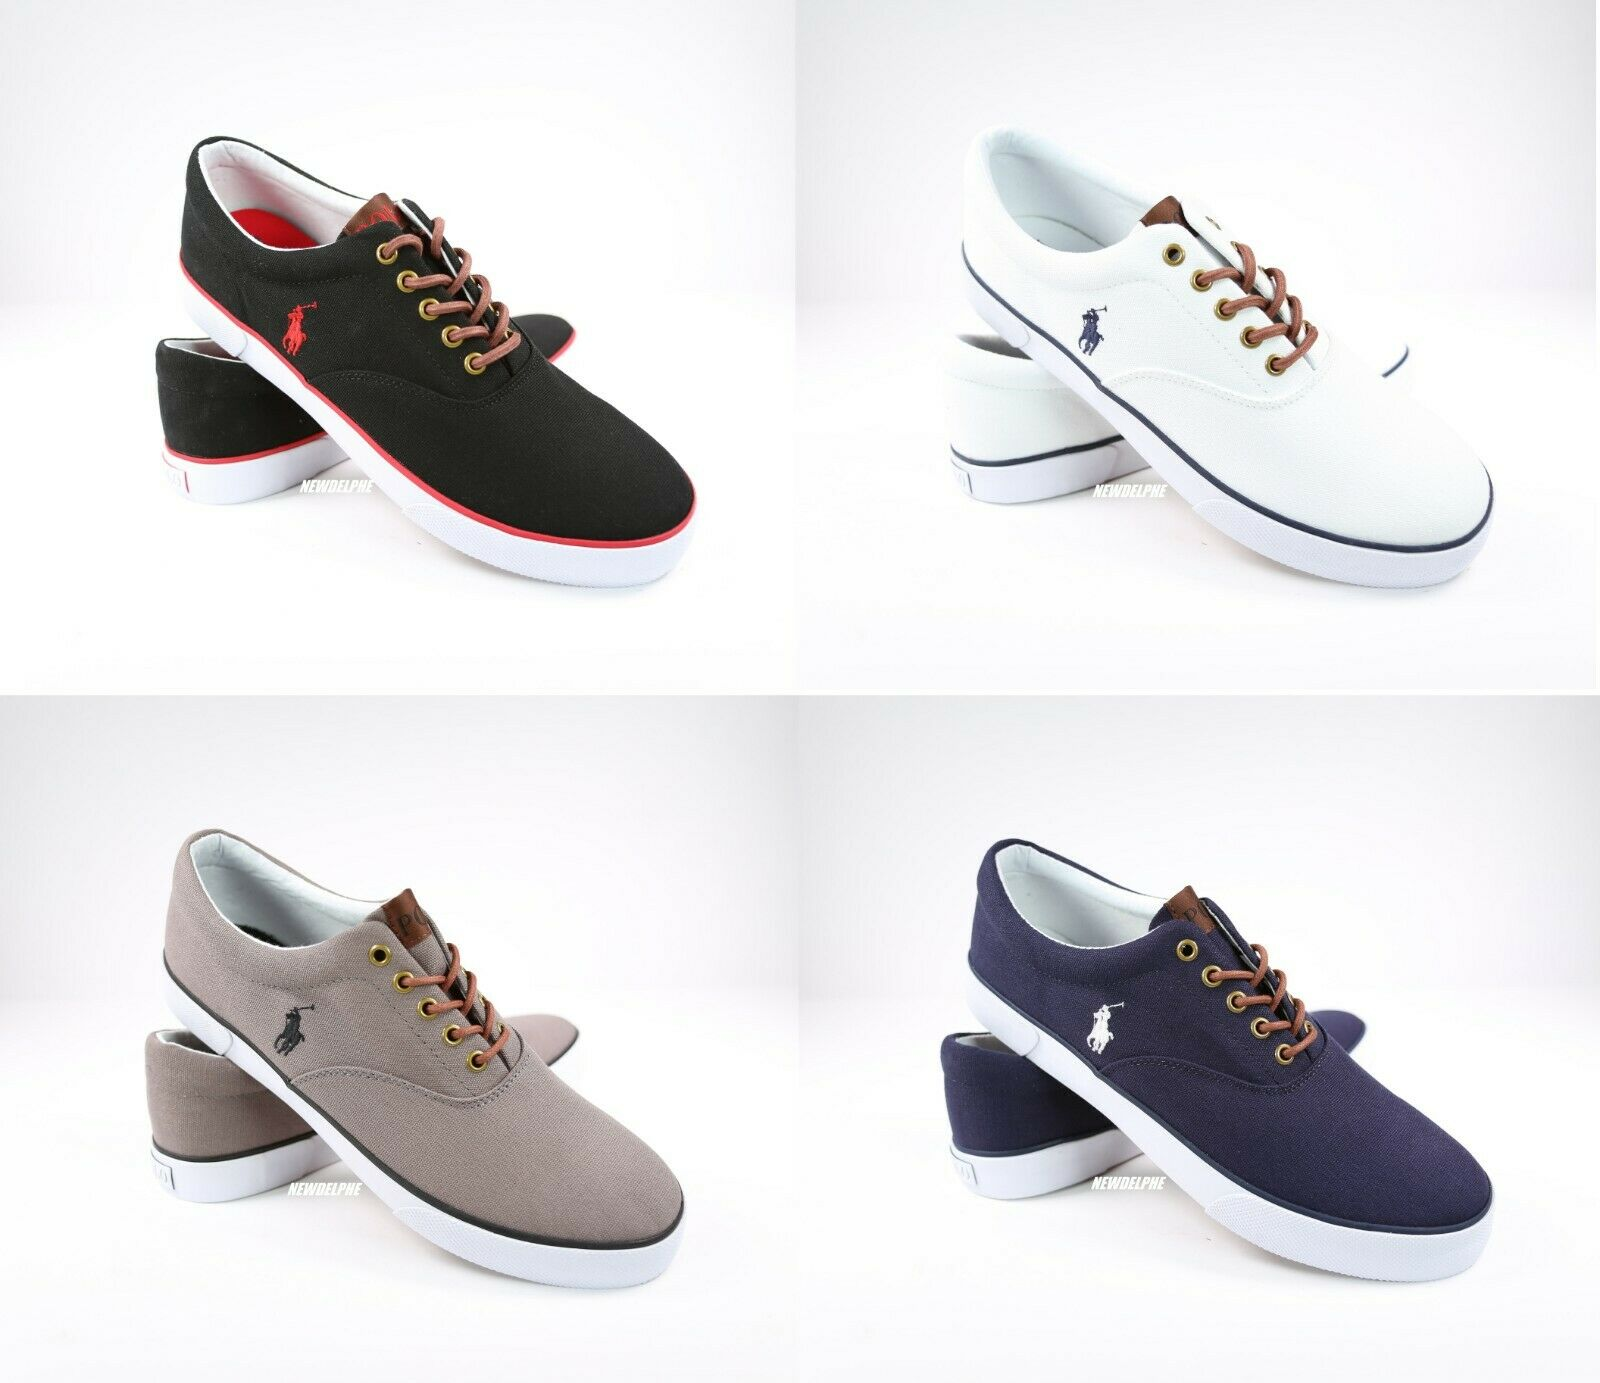 NEW IN BOX Polo Ralph Lauren Men FORESTMONT   HARVEY Sneakers Casual shoes Pony